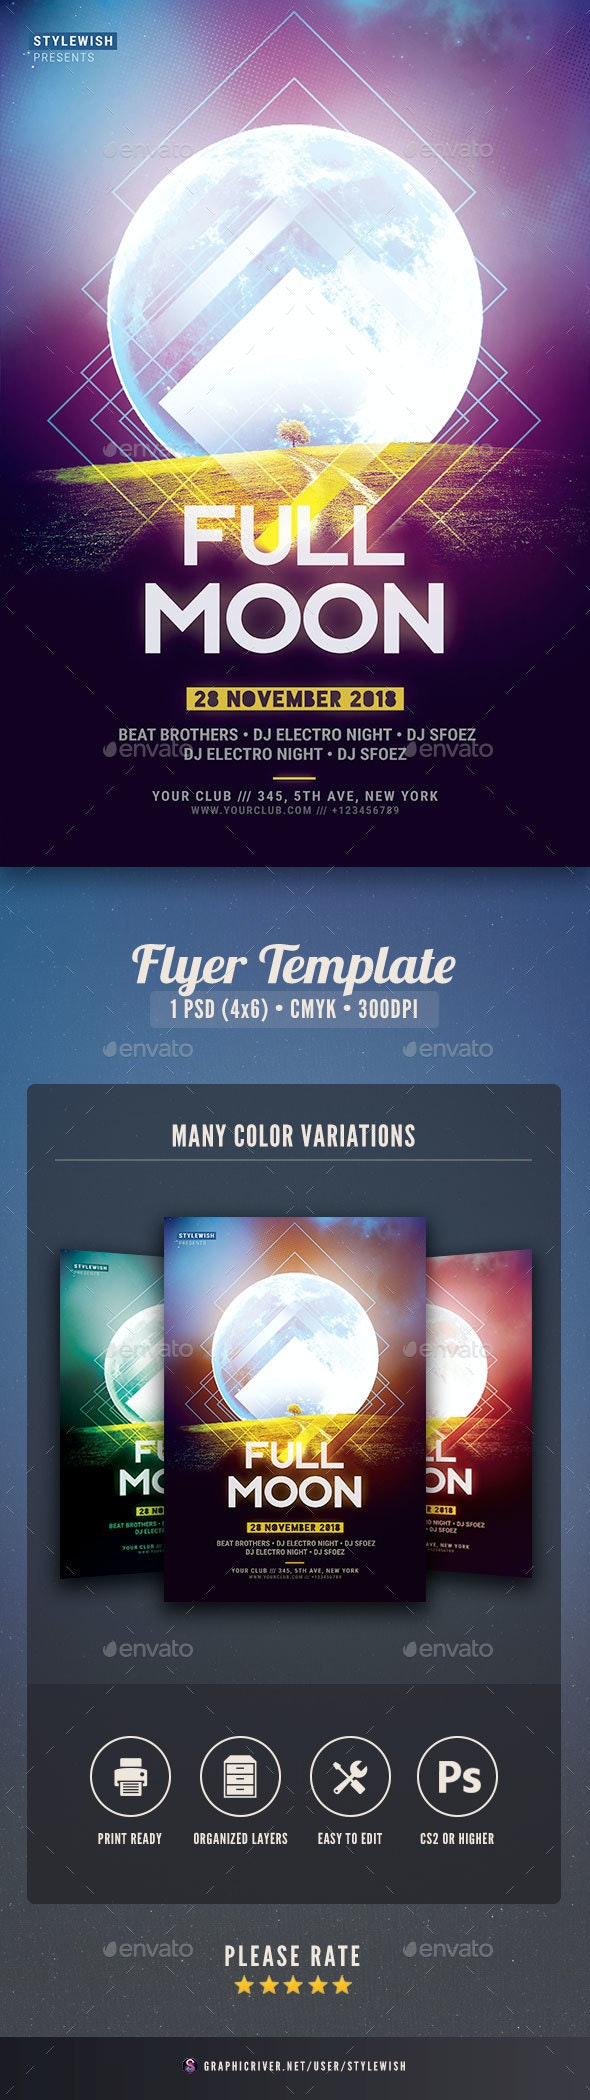 Full Moon Flyer - Clubs & Parties Events